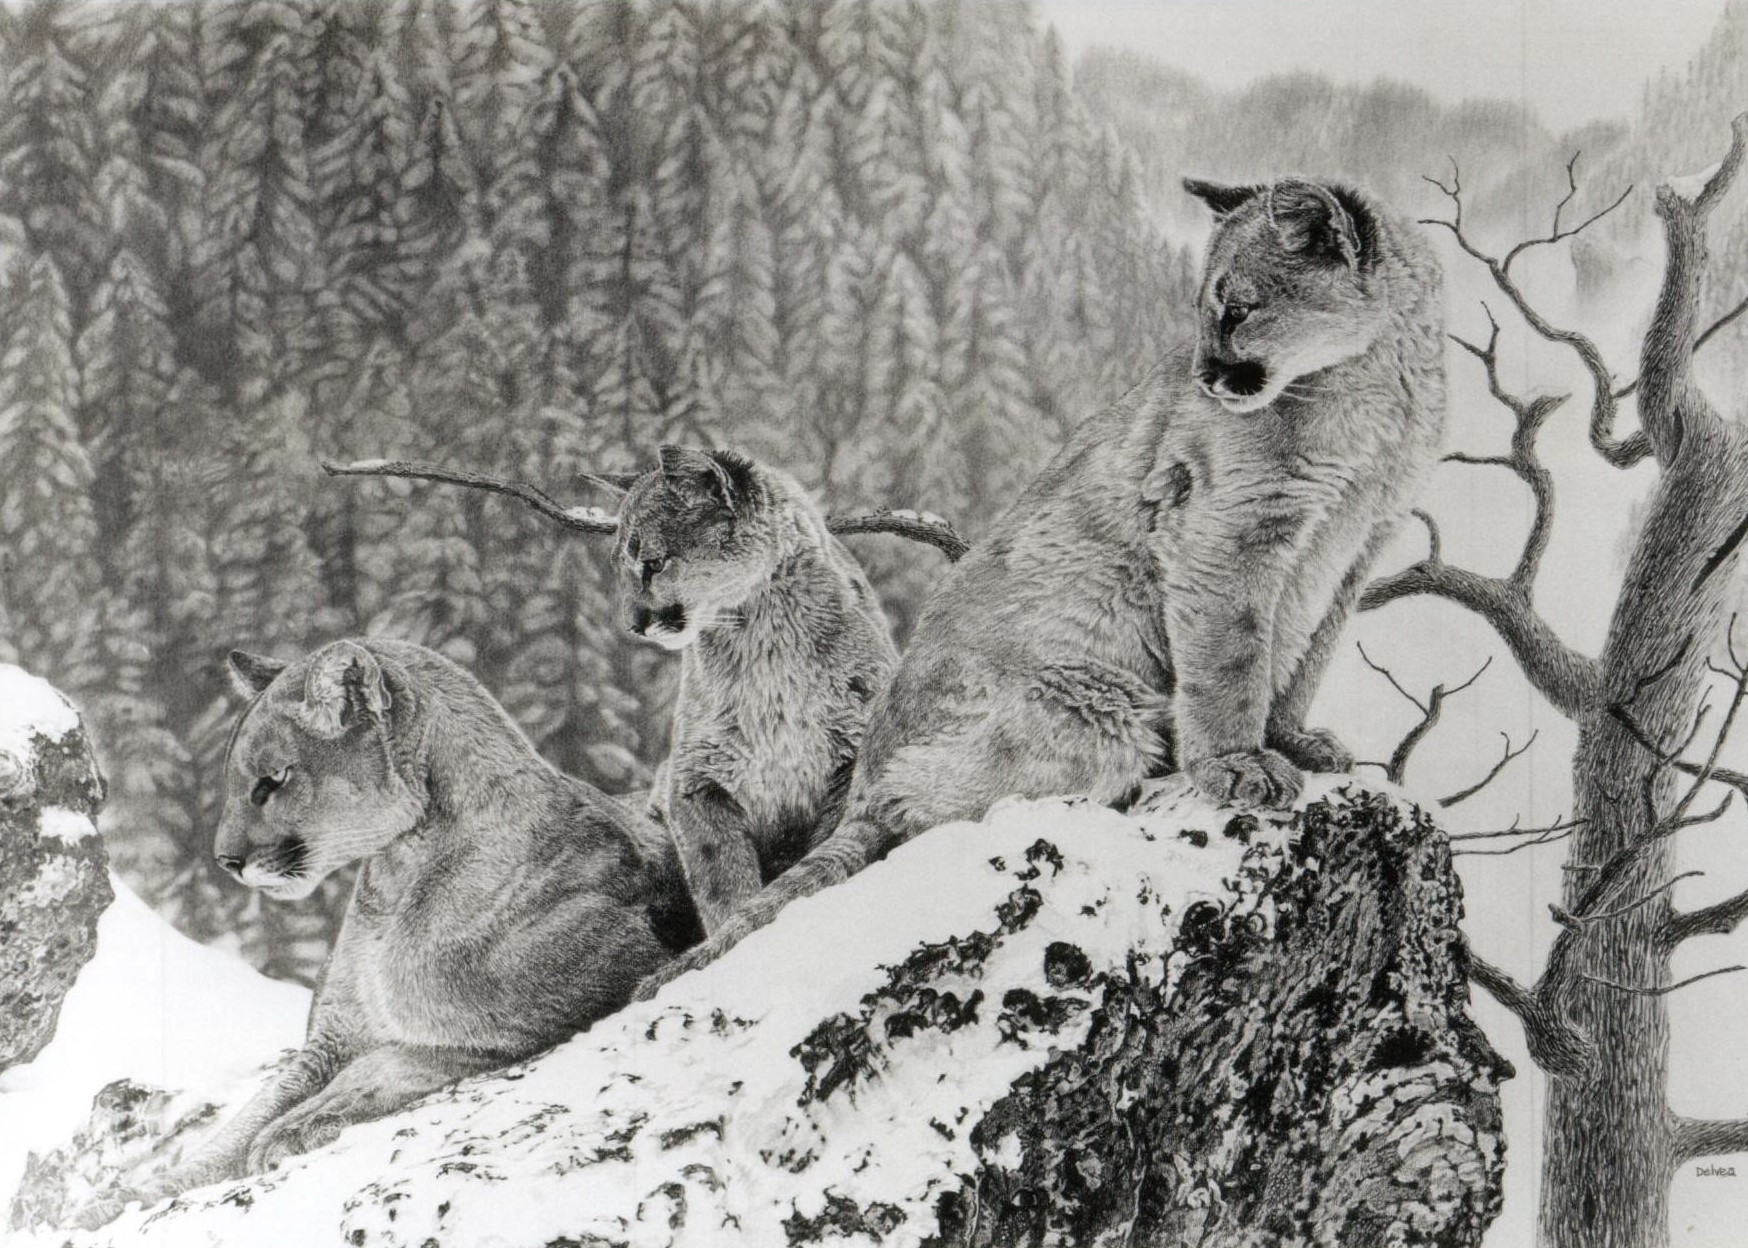 Drawing of a cougar by Delvea Tuff, titled Cougars.